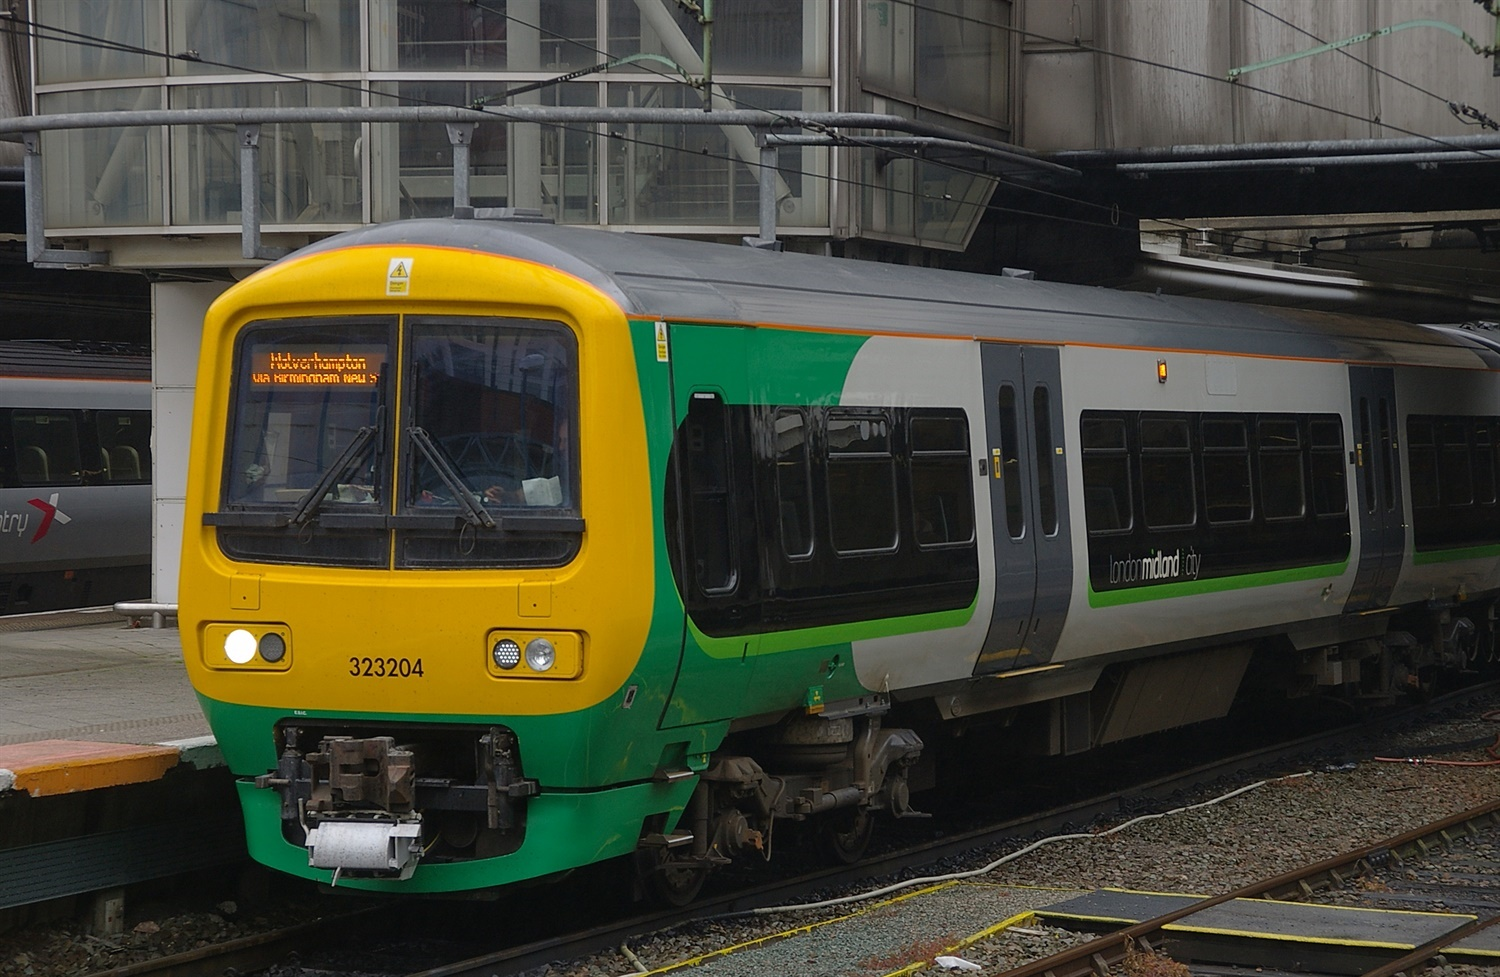 Two foreign firms and Govia in the running for West Midlands franchise